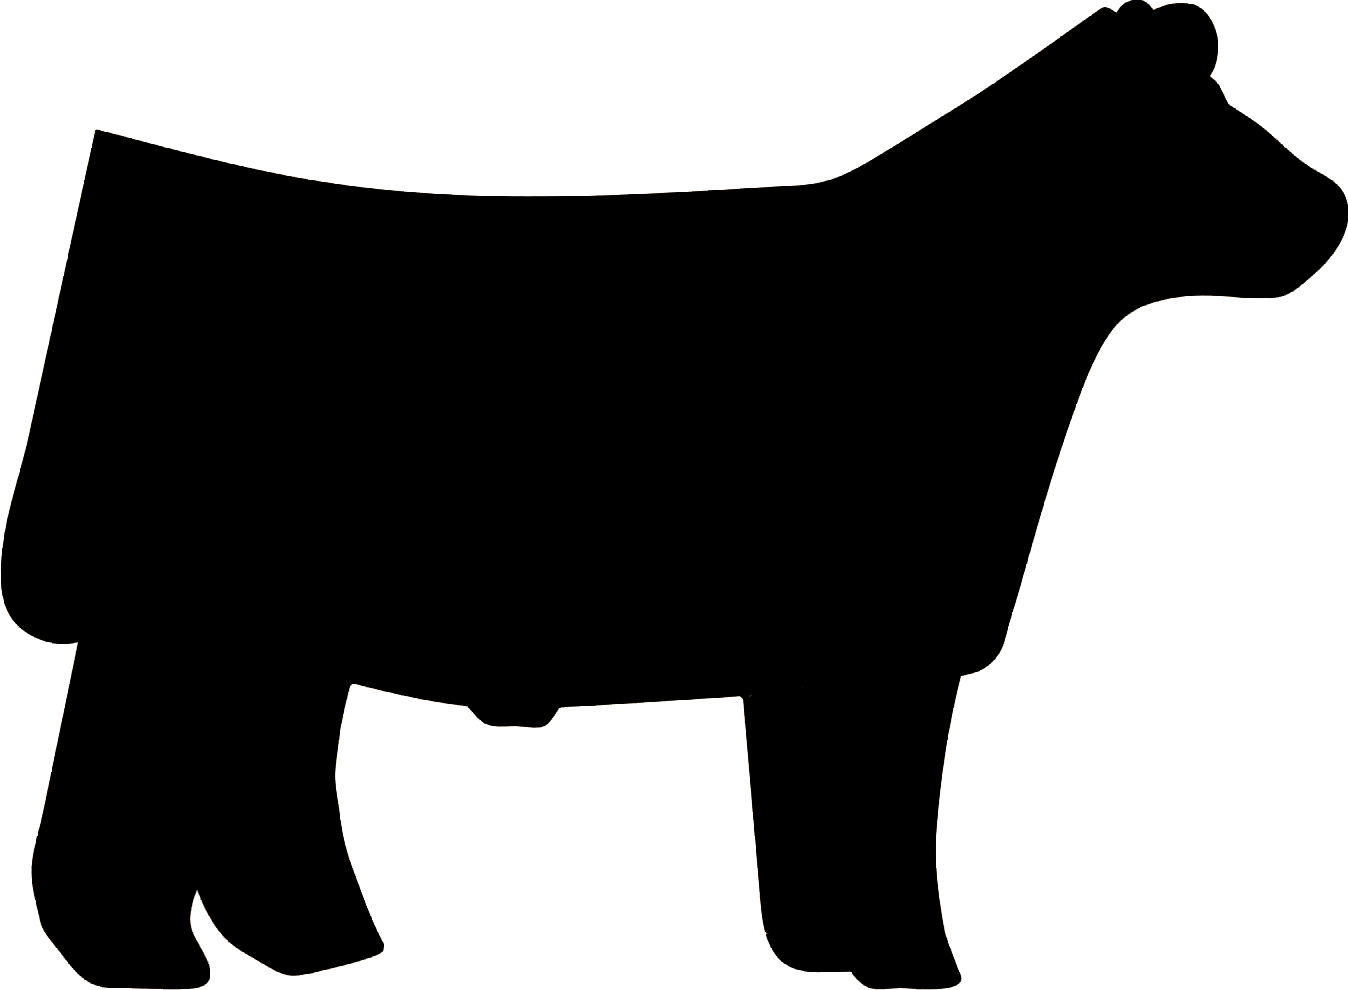 Silhouette at getdrawings com. Longhorn clipart cattle drive